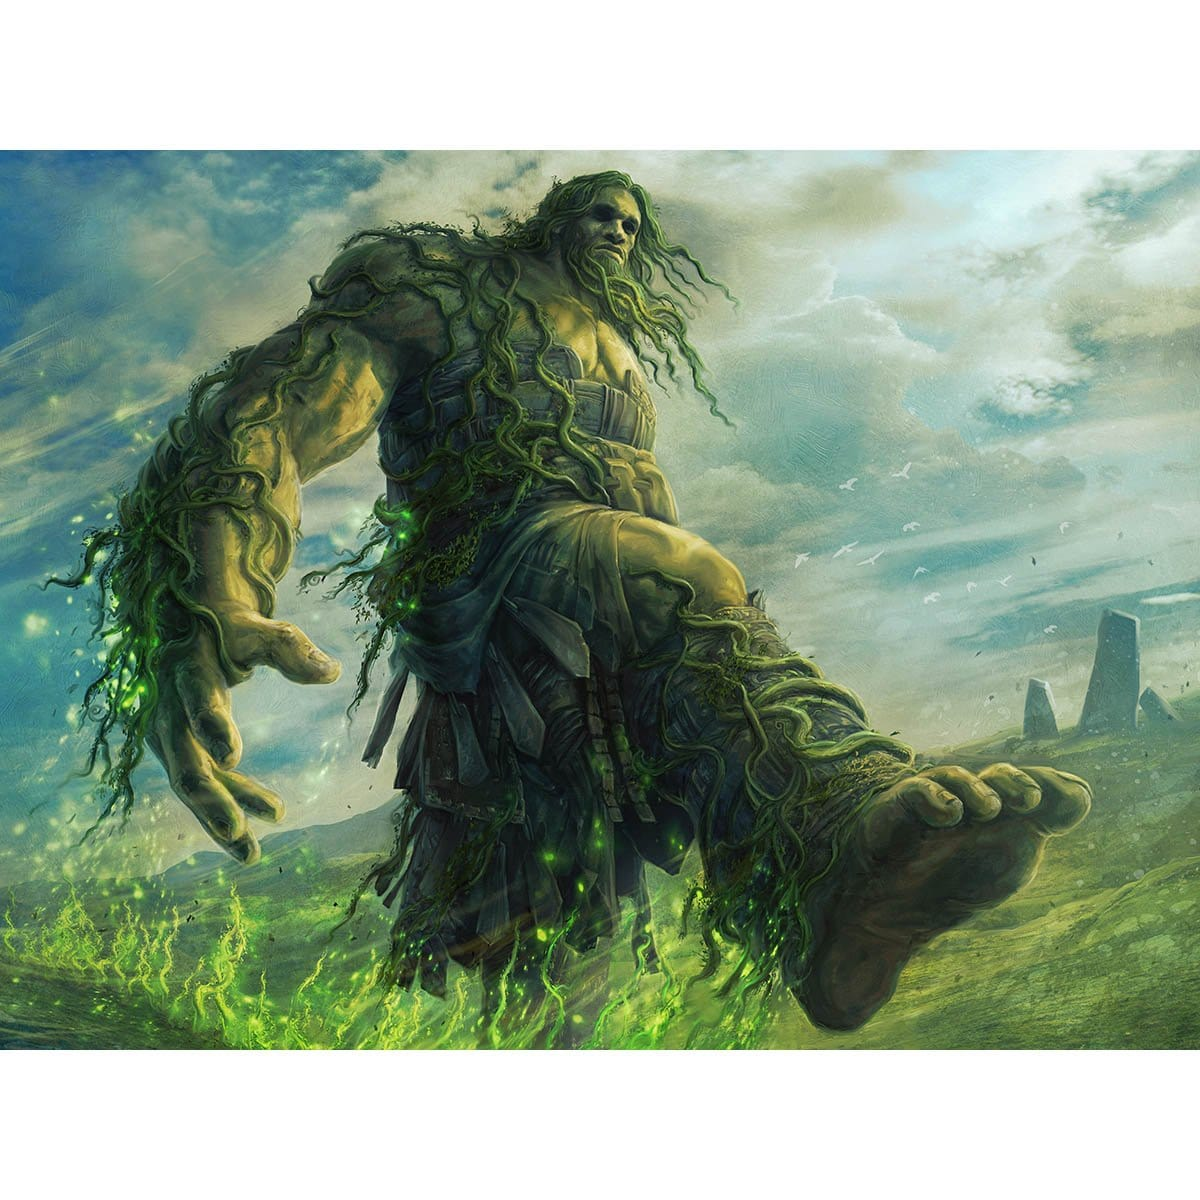 Beanstalk Giant Print - Print - Original Magic Art - Accessories for Magic the Gathering and other card games